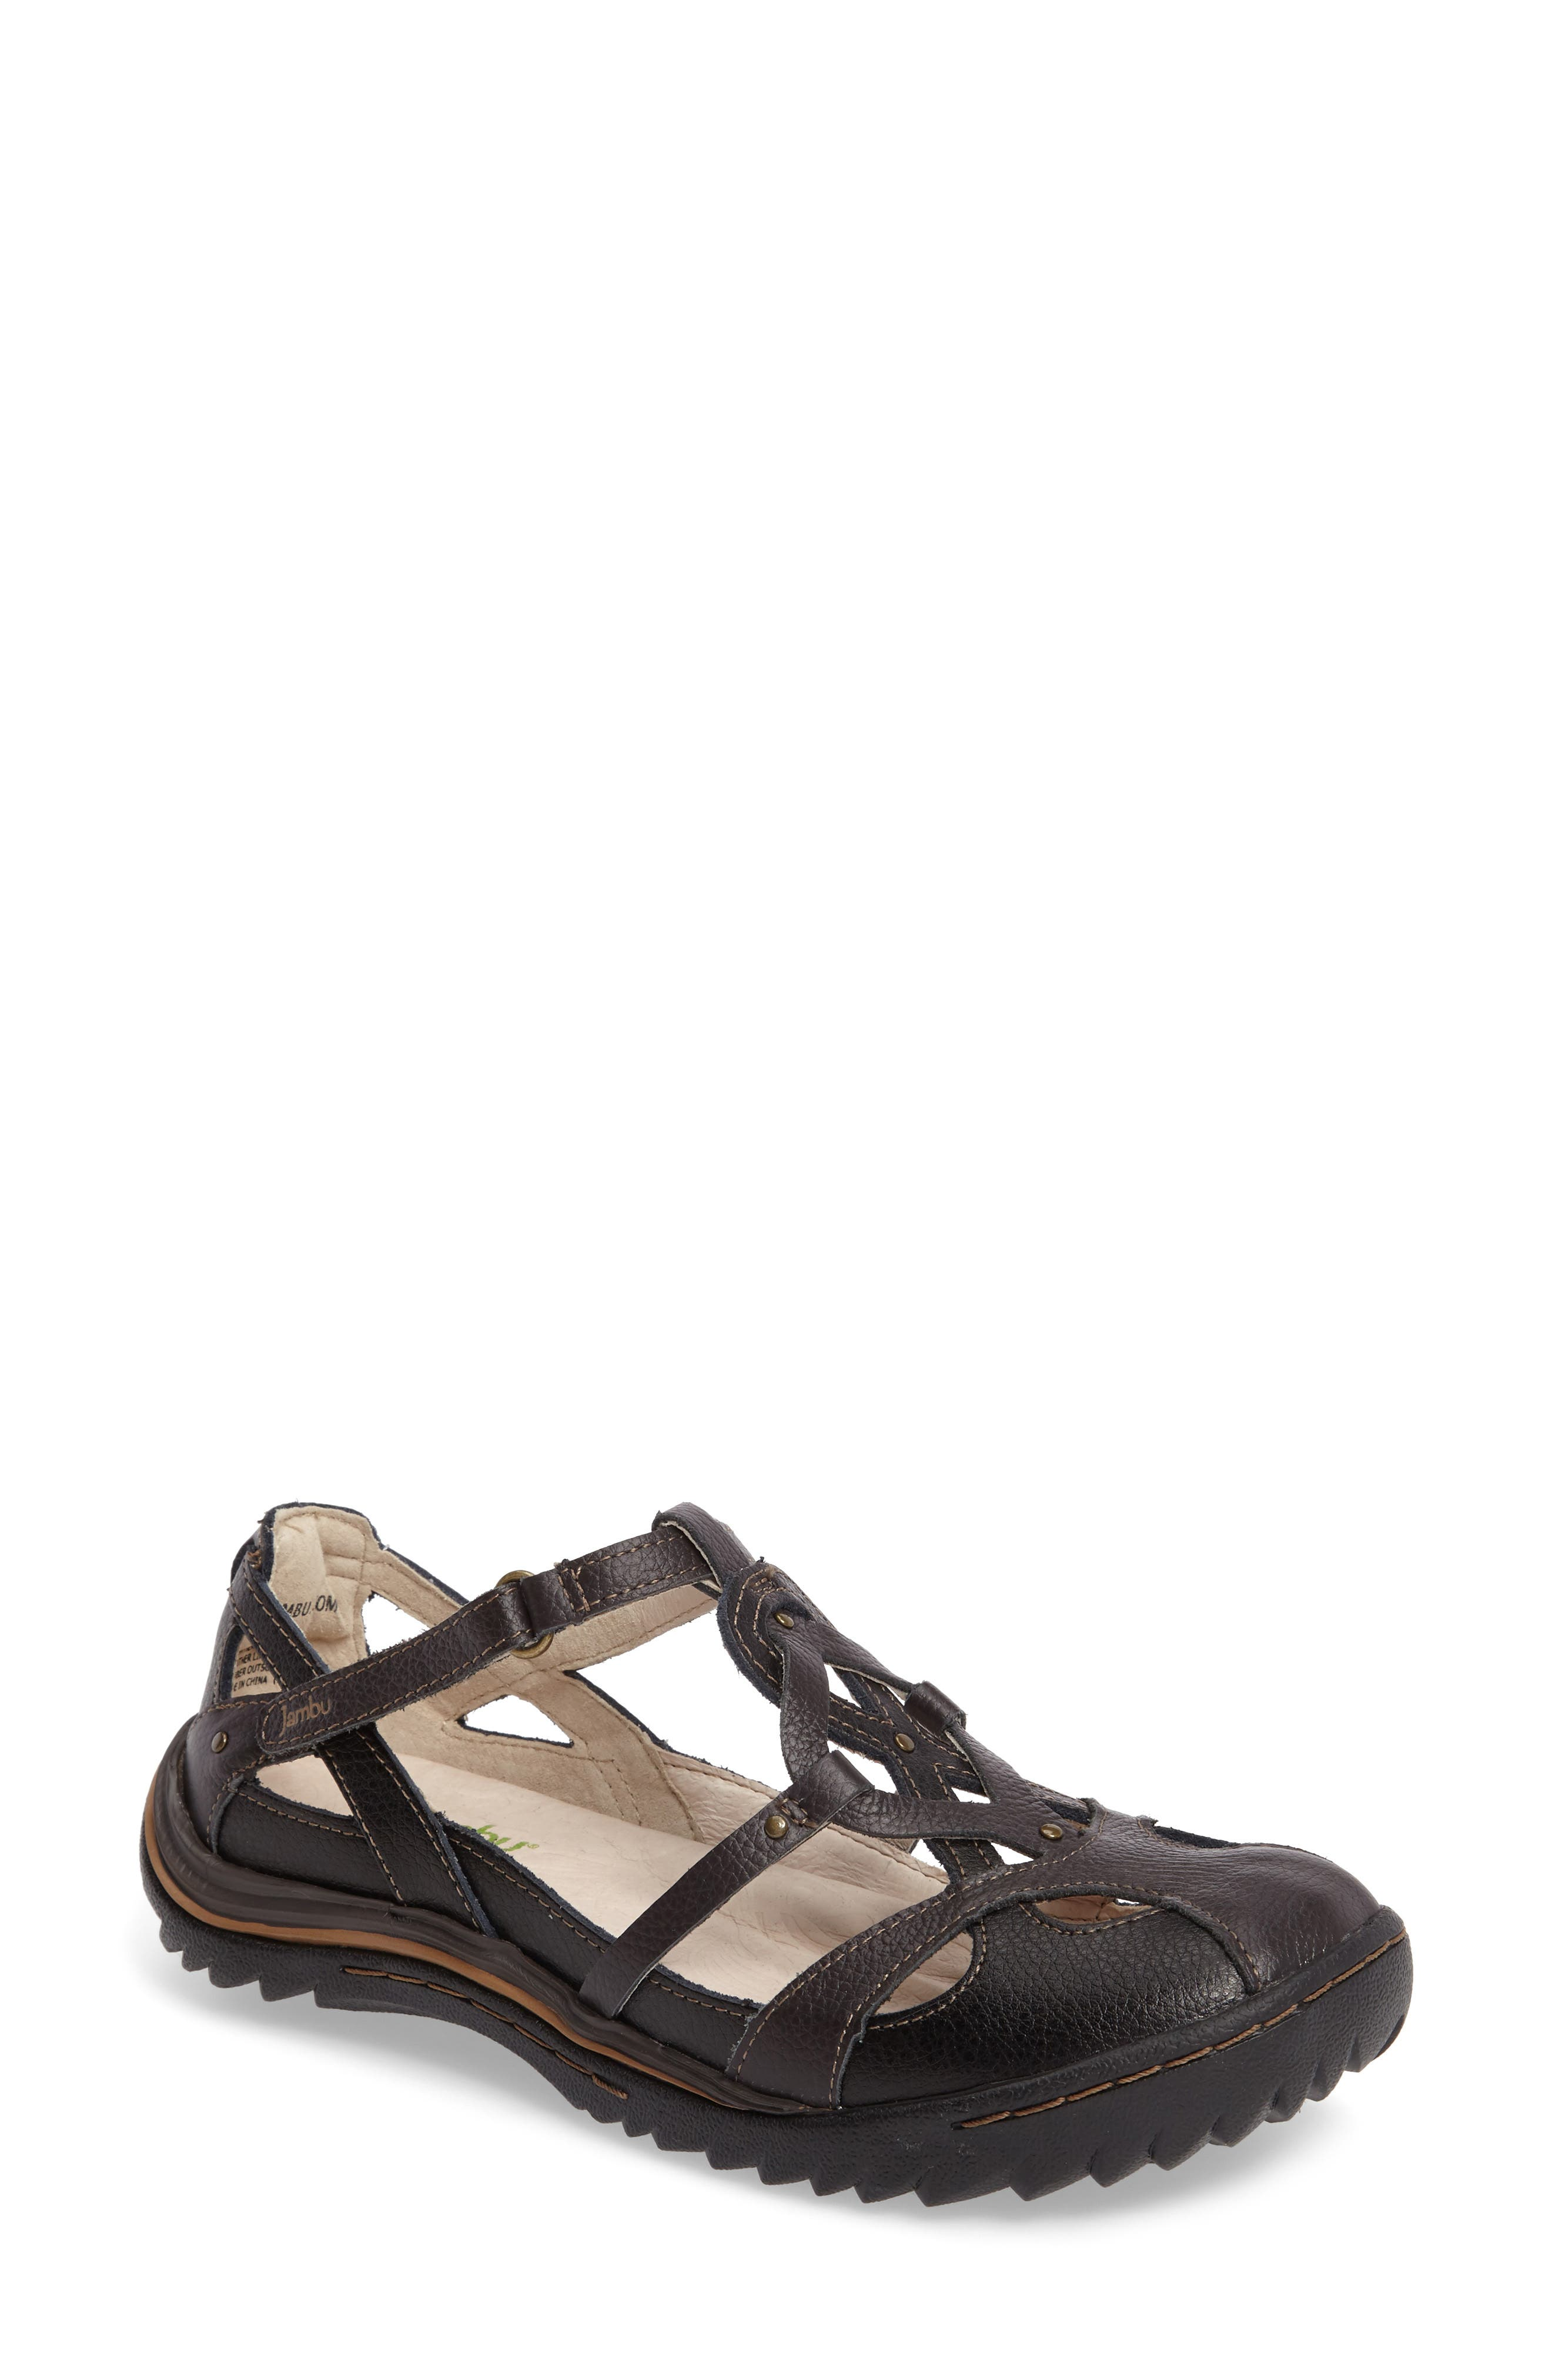 Spain Studded Strappy Sneaker,                         Main,                         color, Black Leather